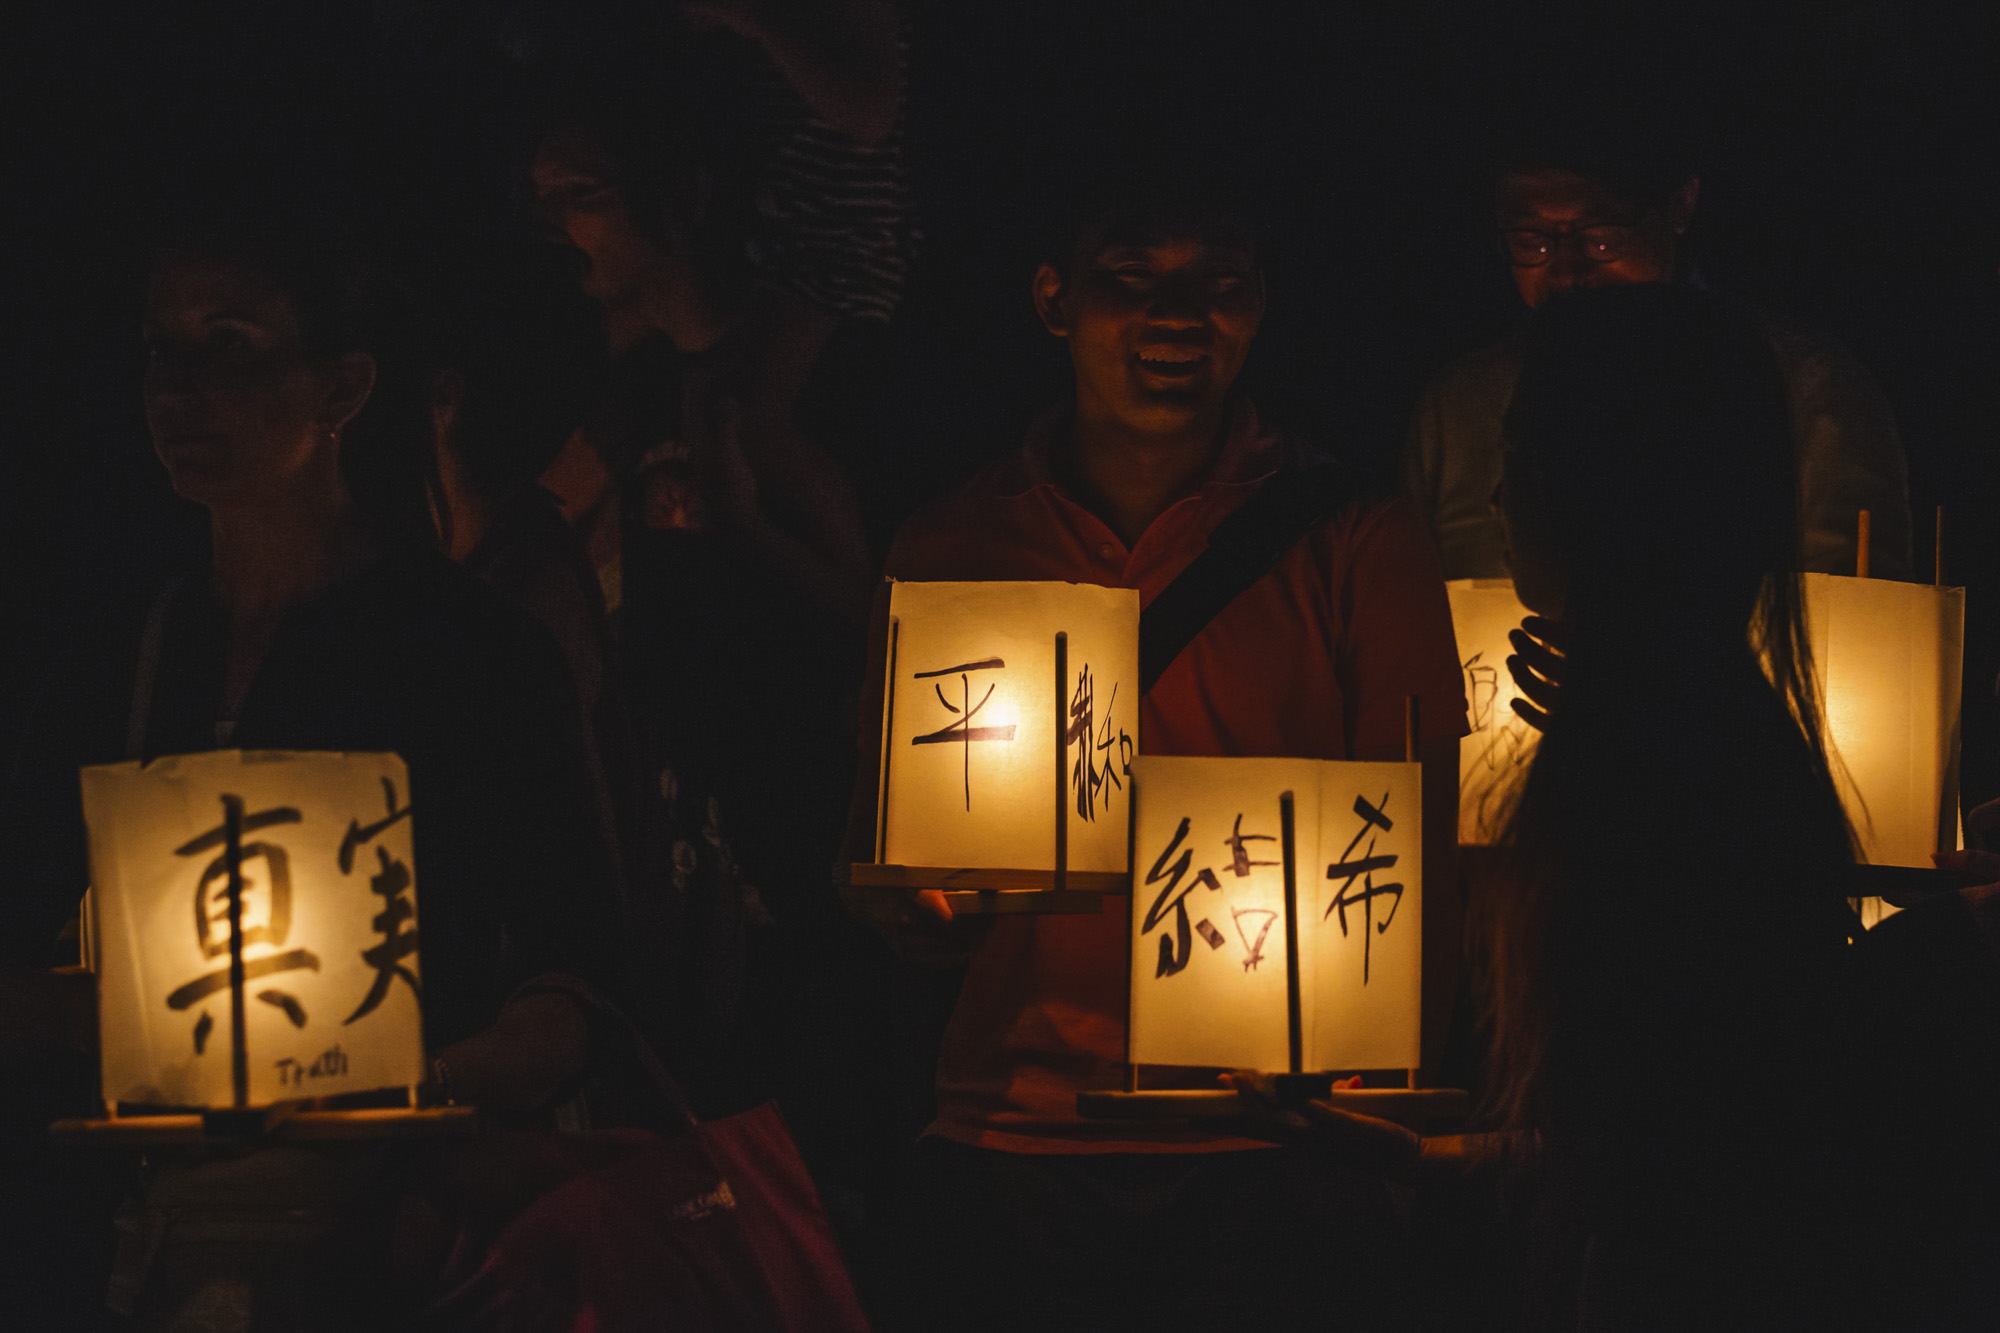 Over 1,000 candle-lit lanterns carrying messages of peace and hope floated across Green Lake during From Hiroshima To Hope, a commemorative ceremony that marks the 73rd anniversary of the atomic bombings of Hiroshima and Nagasaki. (Sunita Martini / Seattle Refined)